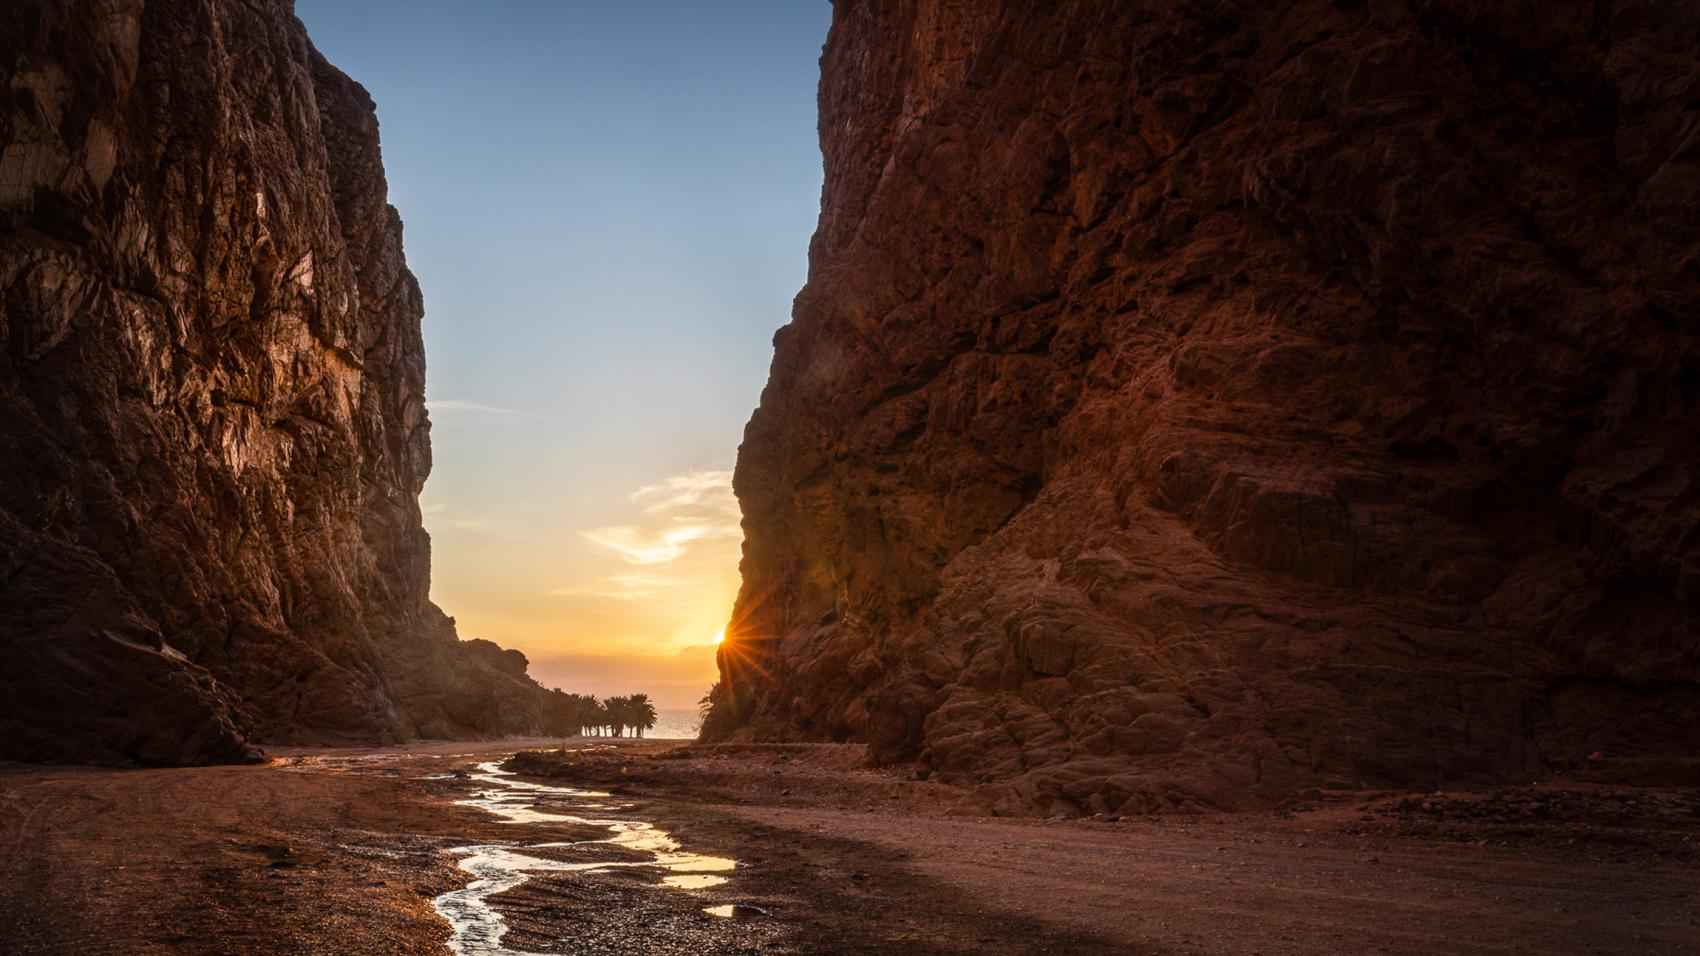 UNWTO and NEOM Launch 'Tourism Experiences of the Future' Challenge